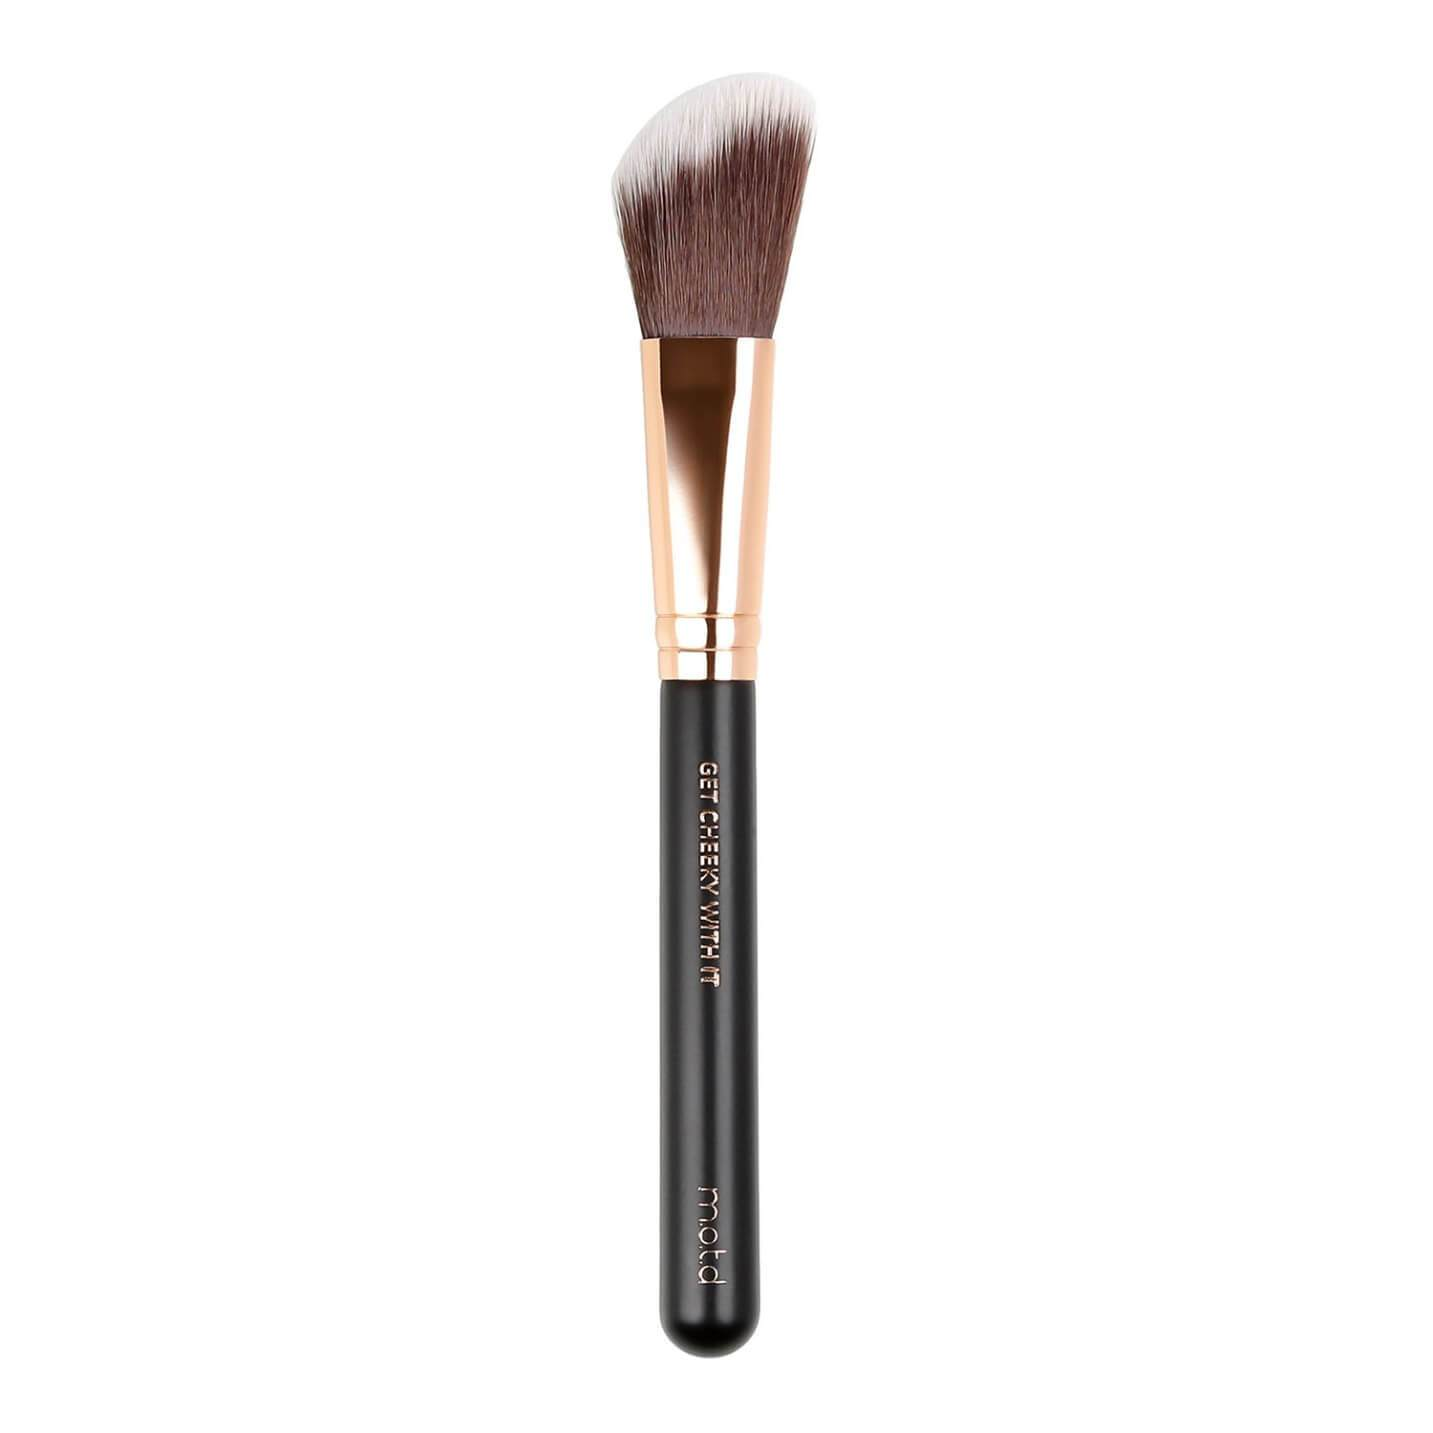 MOTD Get Cheeky With It Blush Brush